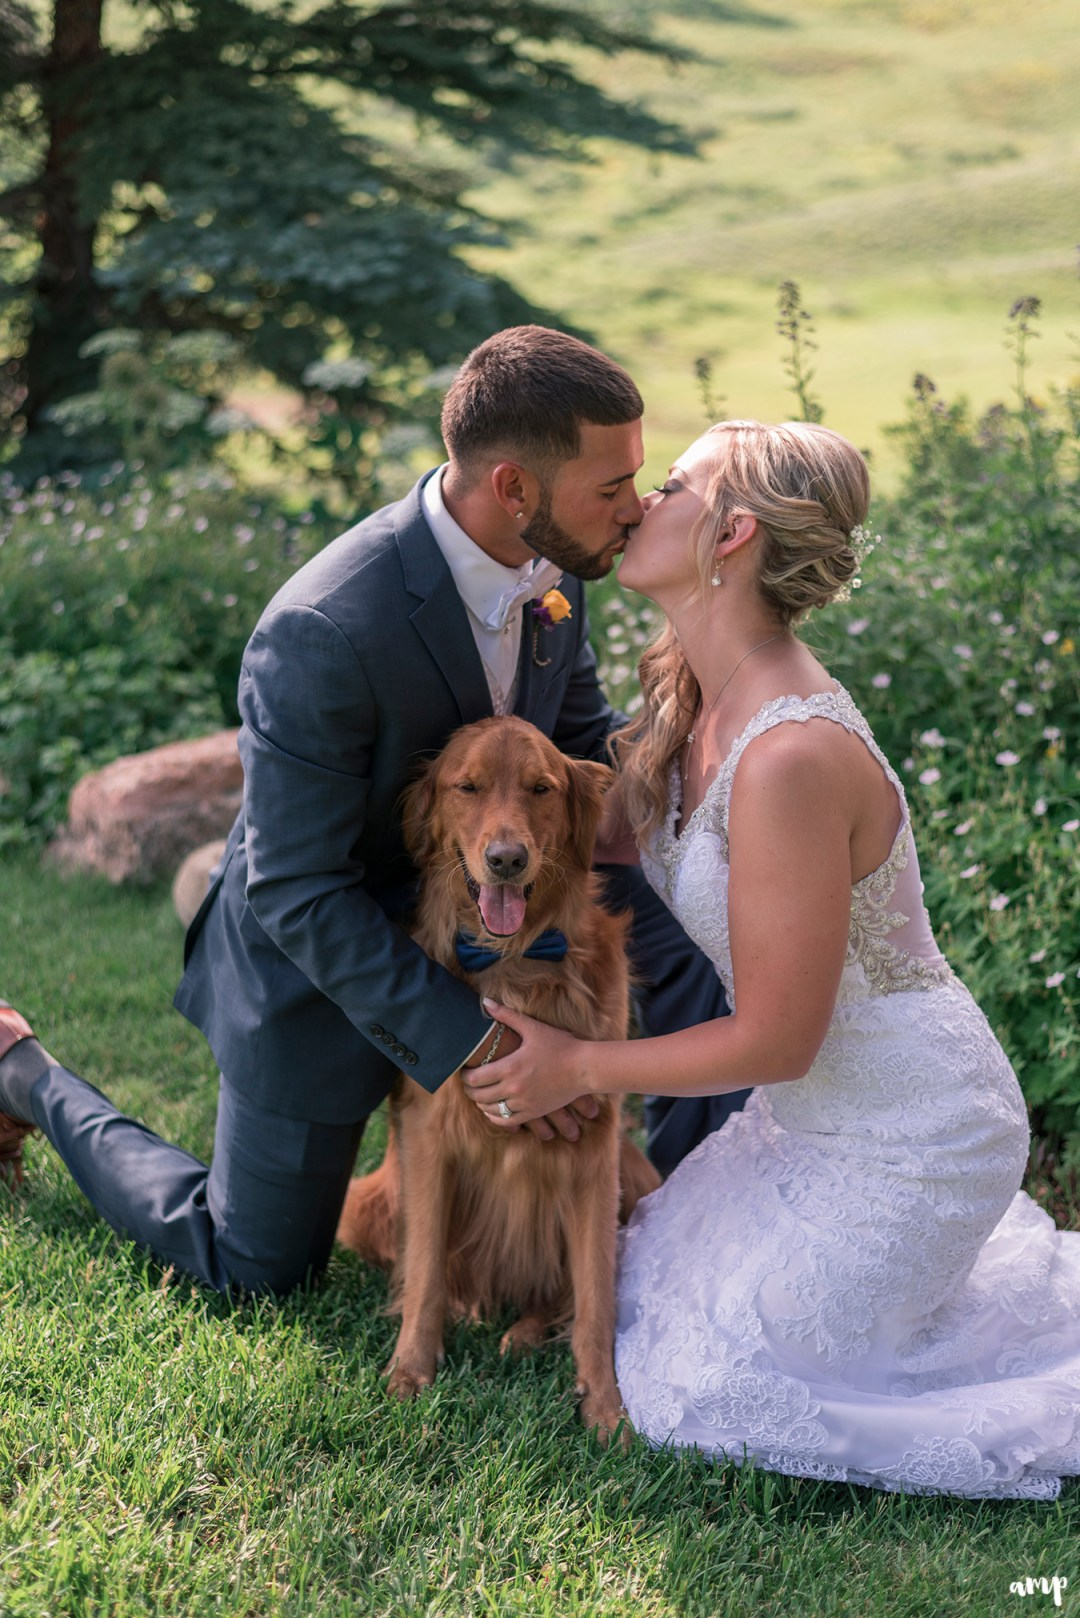 Bride and groom share a kiss over their dog